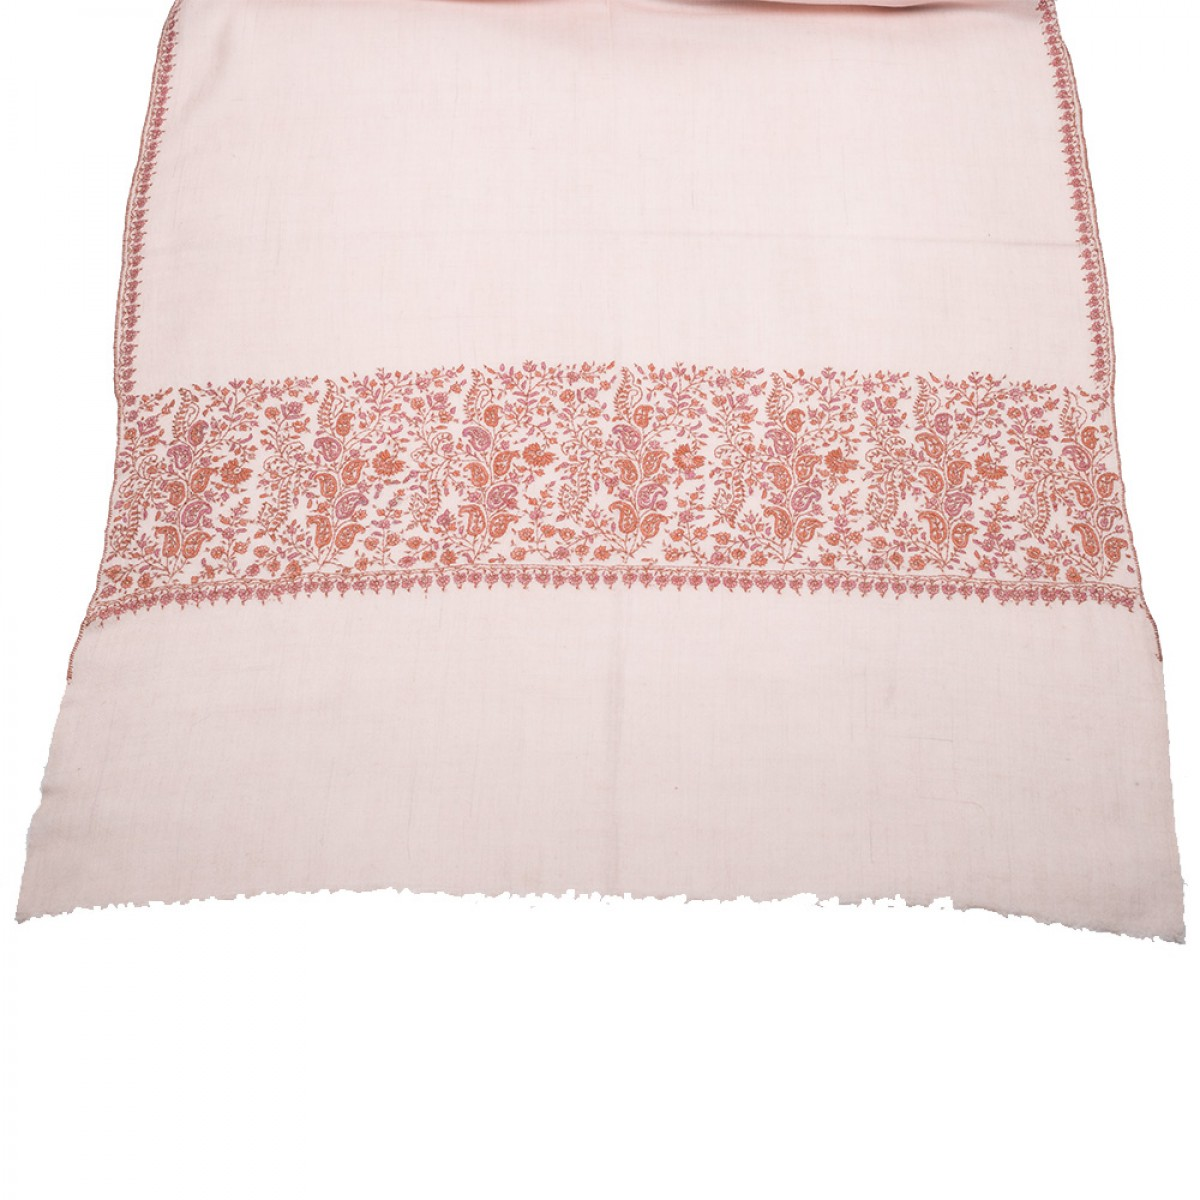 Hand Embroidered Cashmere Pashmina Stole - Baby Pink